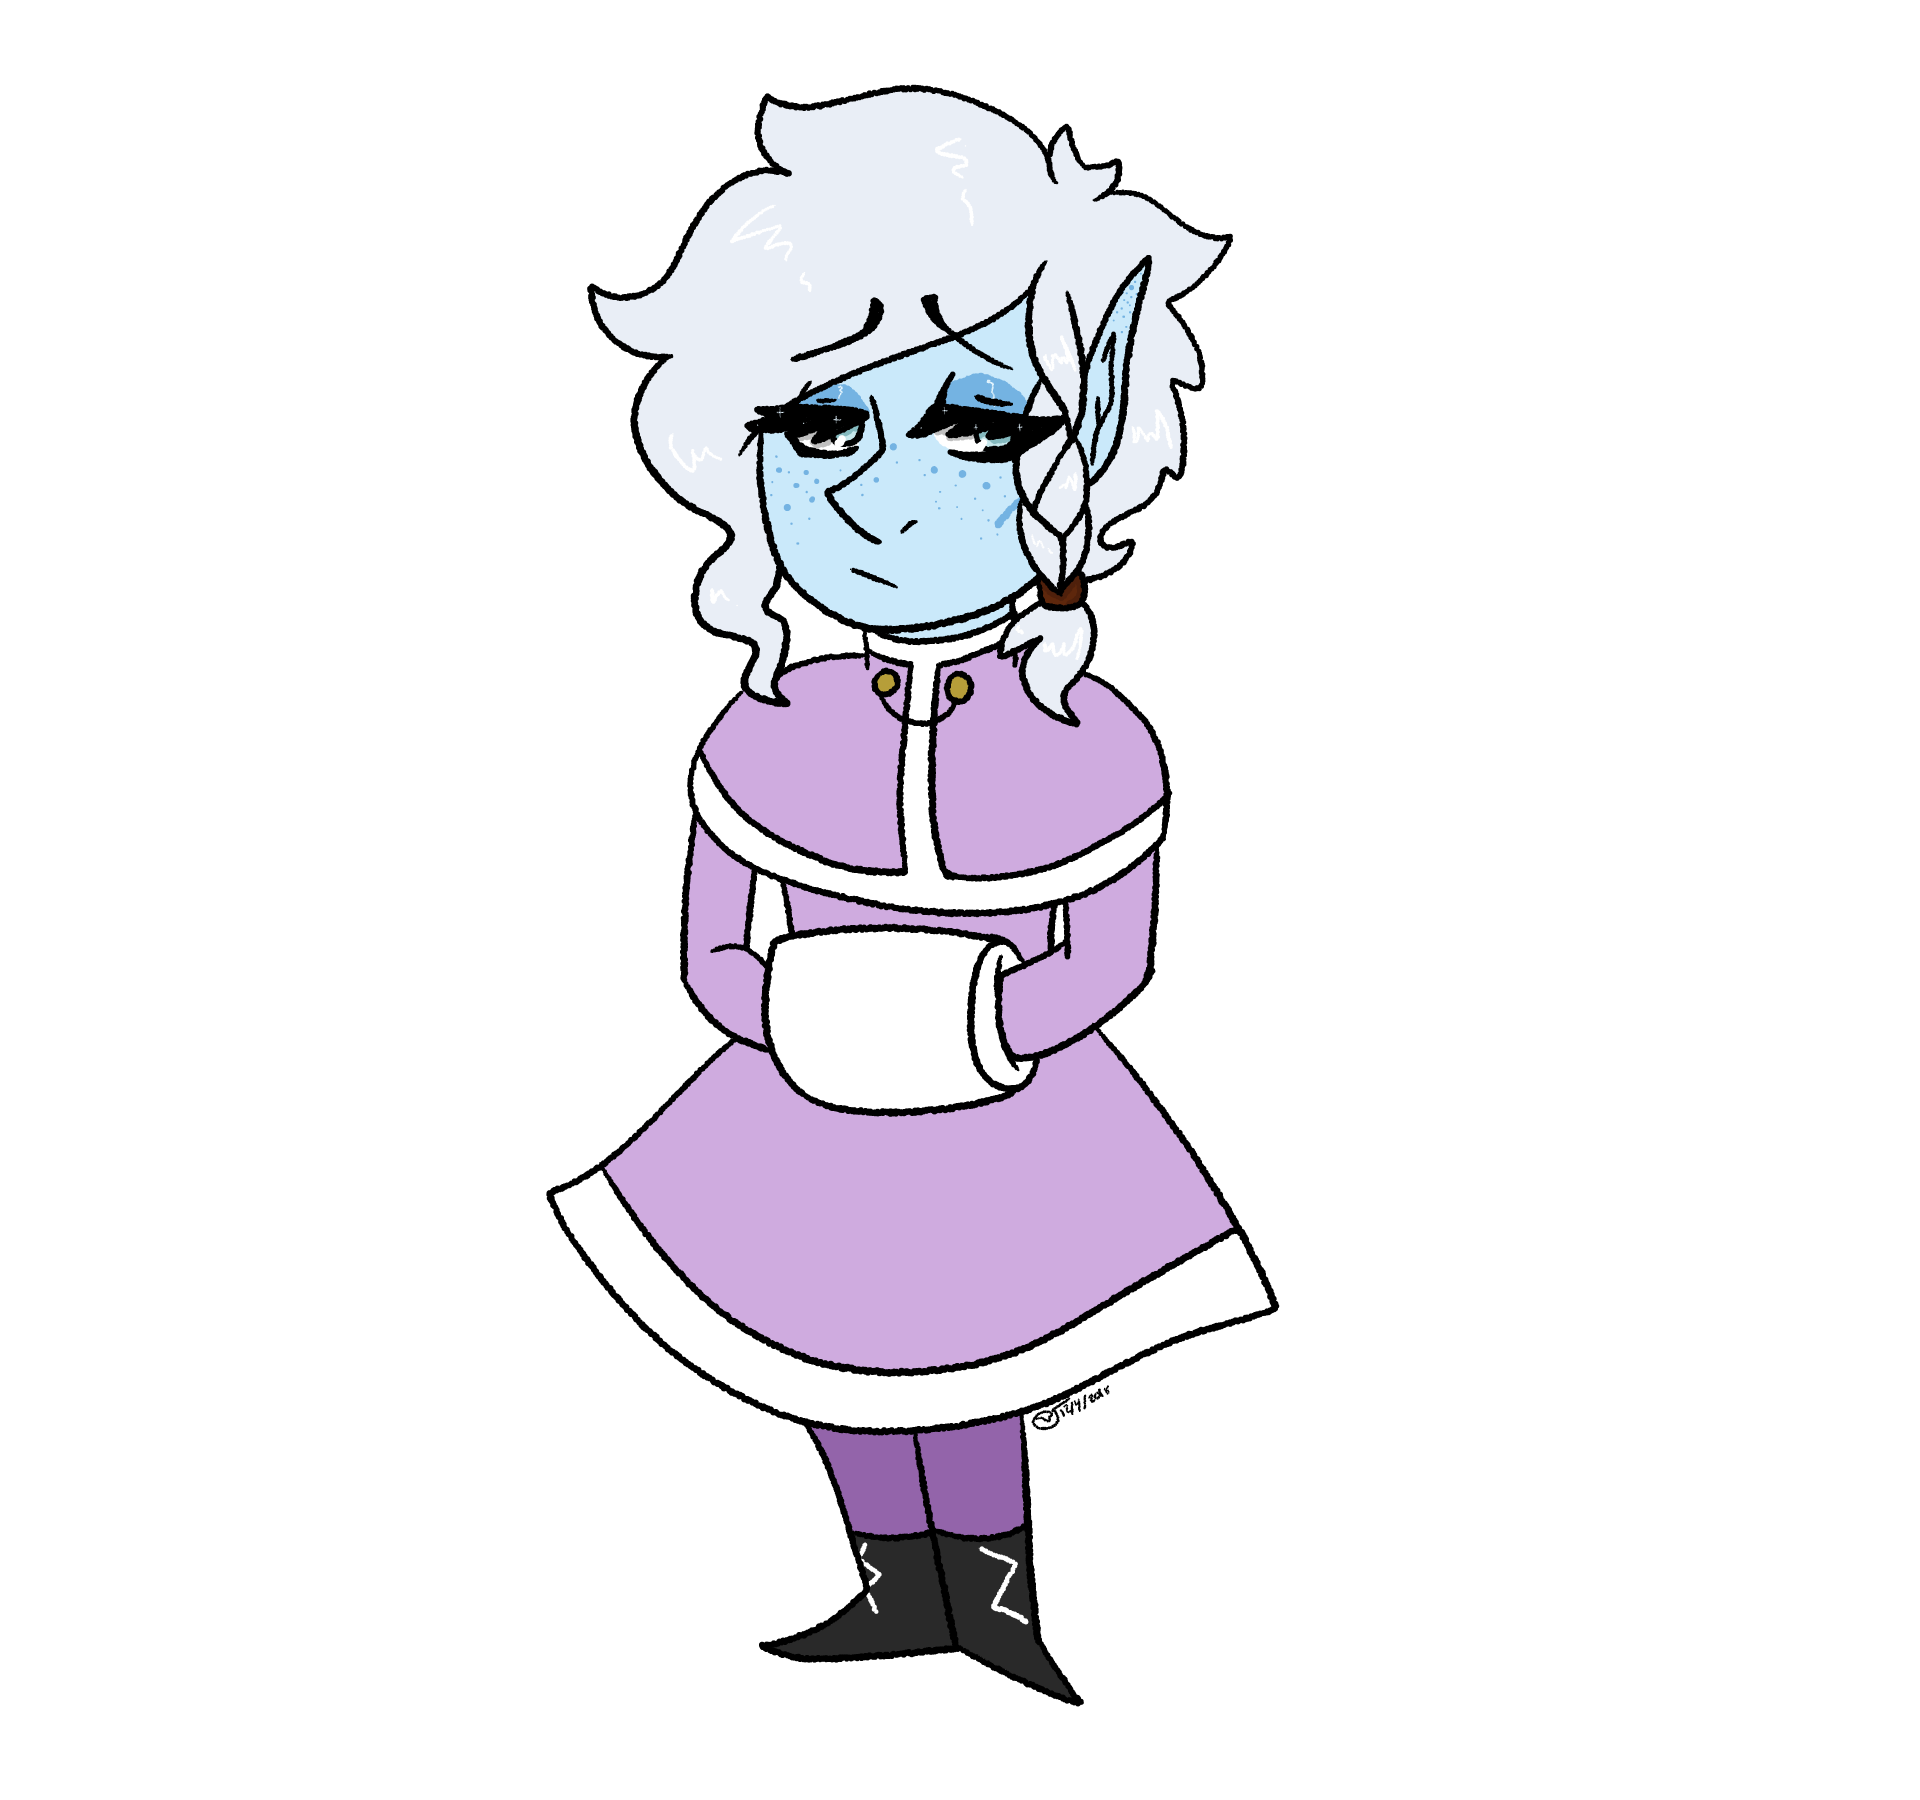 Frost transparent drawing. By floraldecay on newgrounds